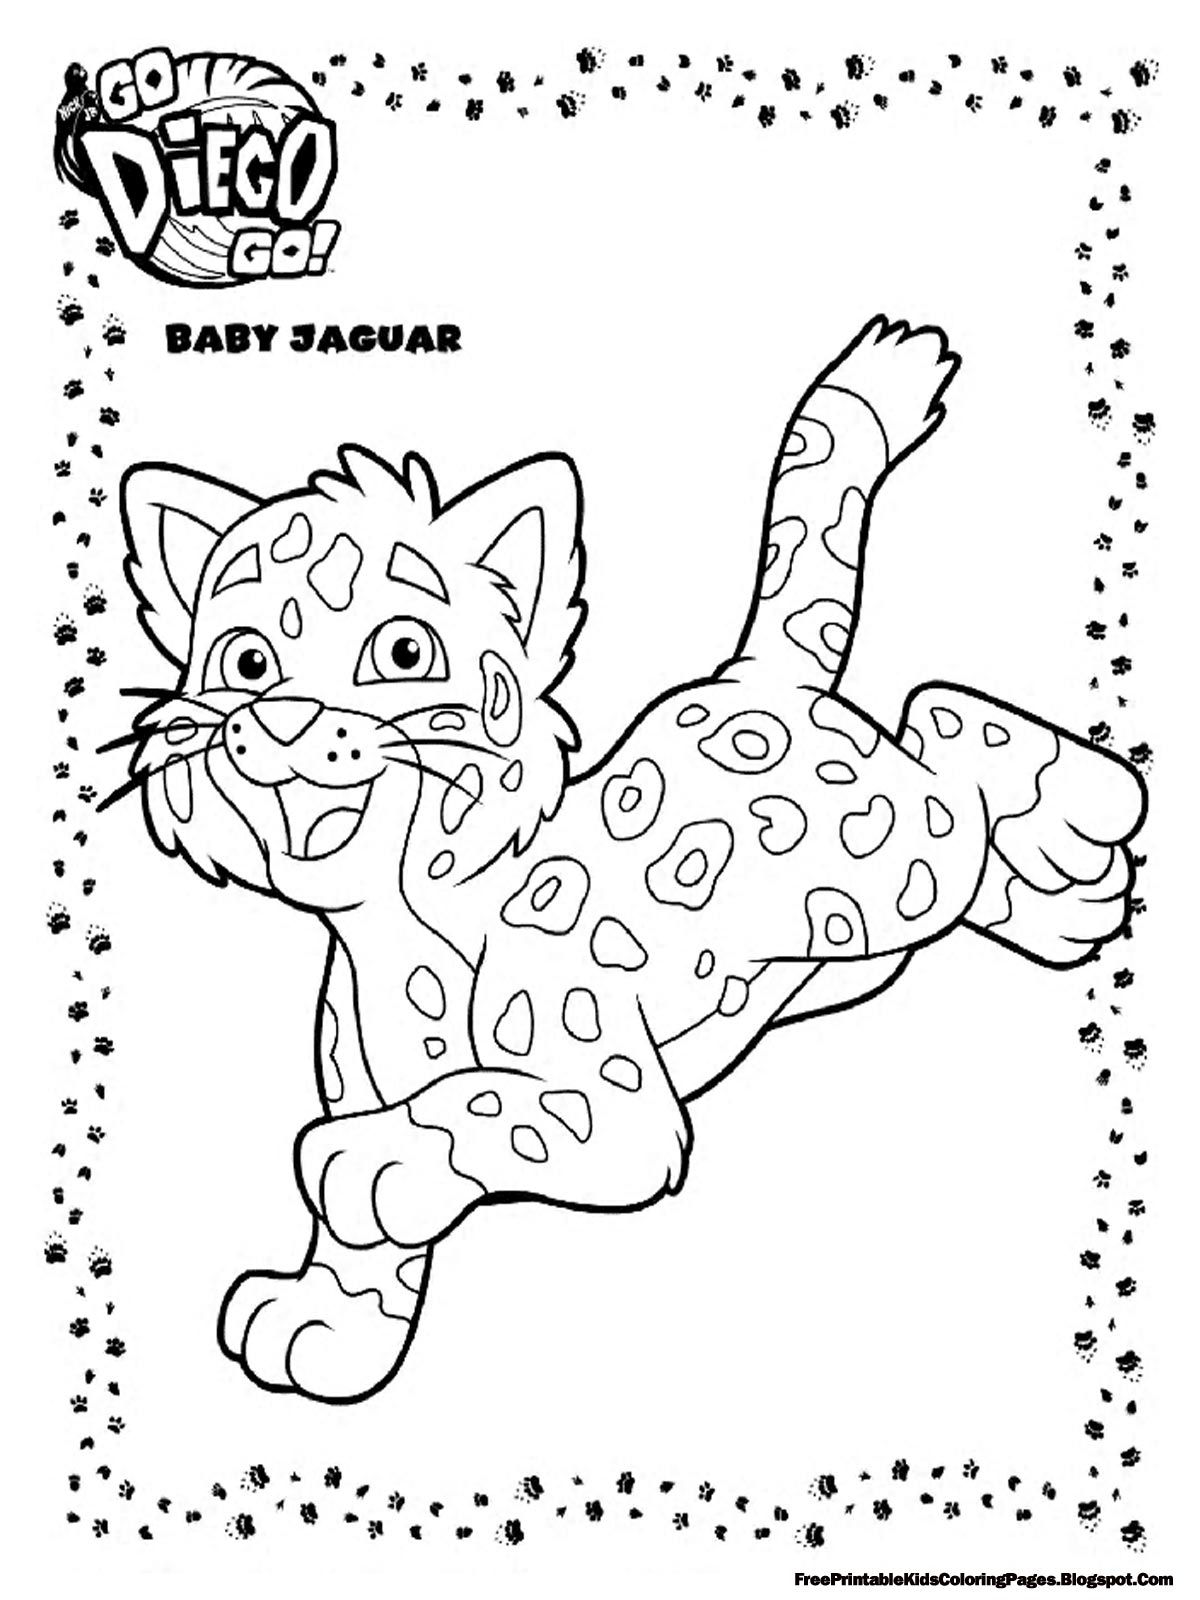 coloring pages baby jaguar - photo#3